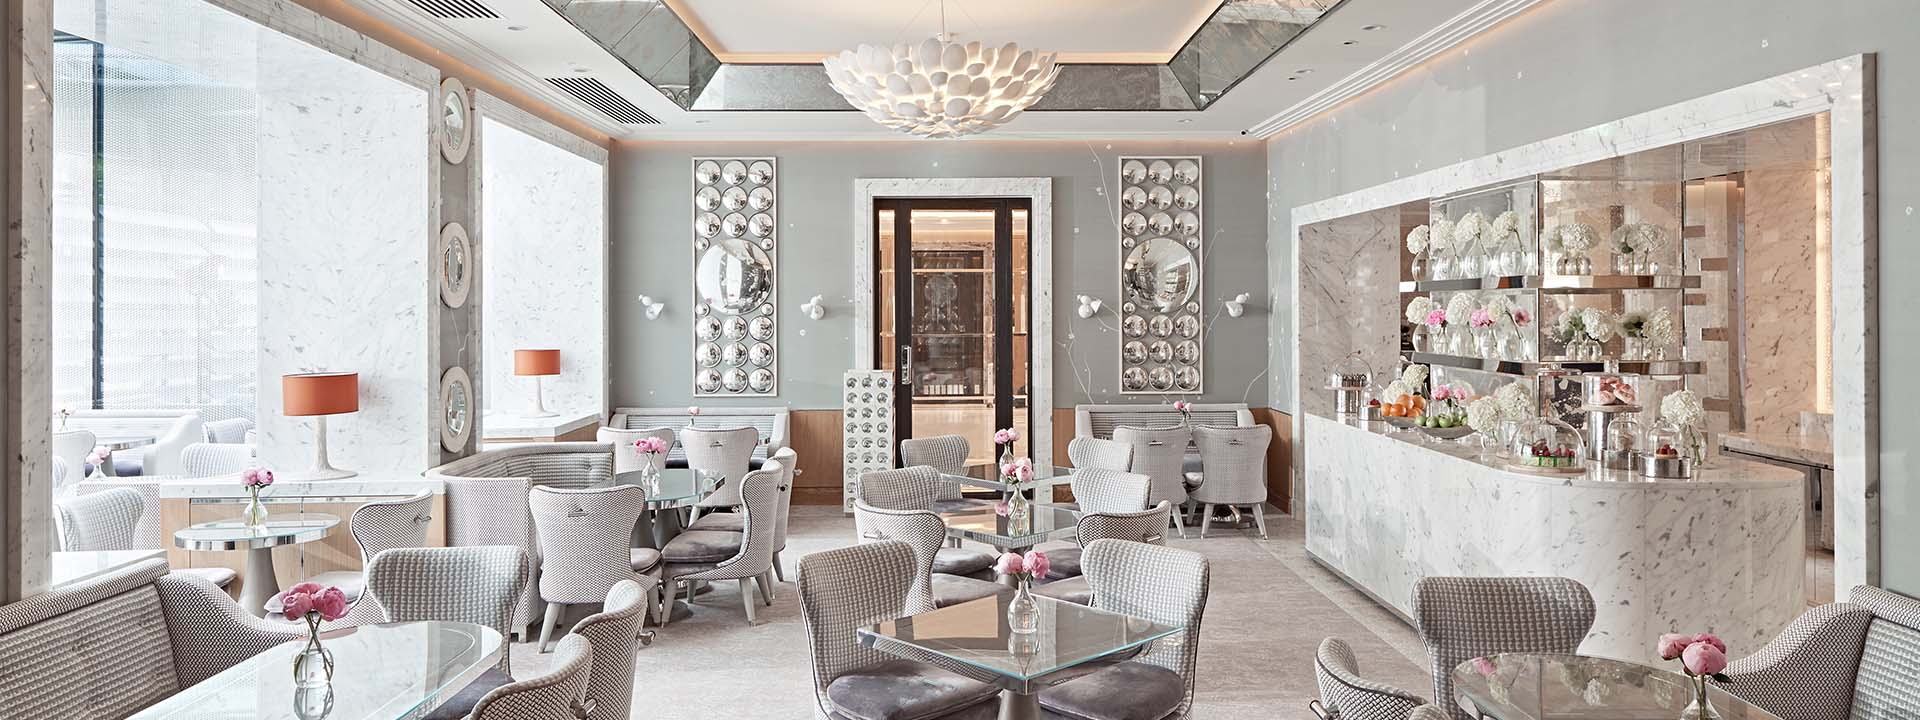 Collins Room restaurant light grey interior, with velvet grey seats, glass tables and silver wall decorations at The Berkeley